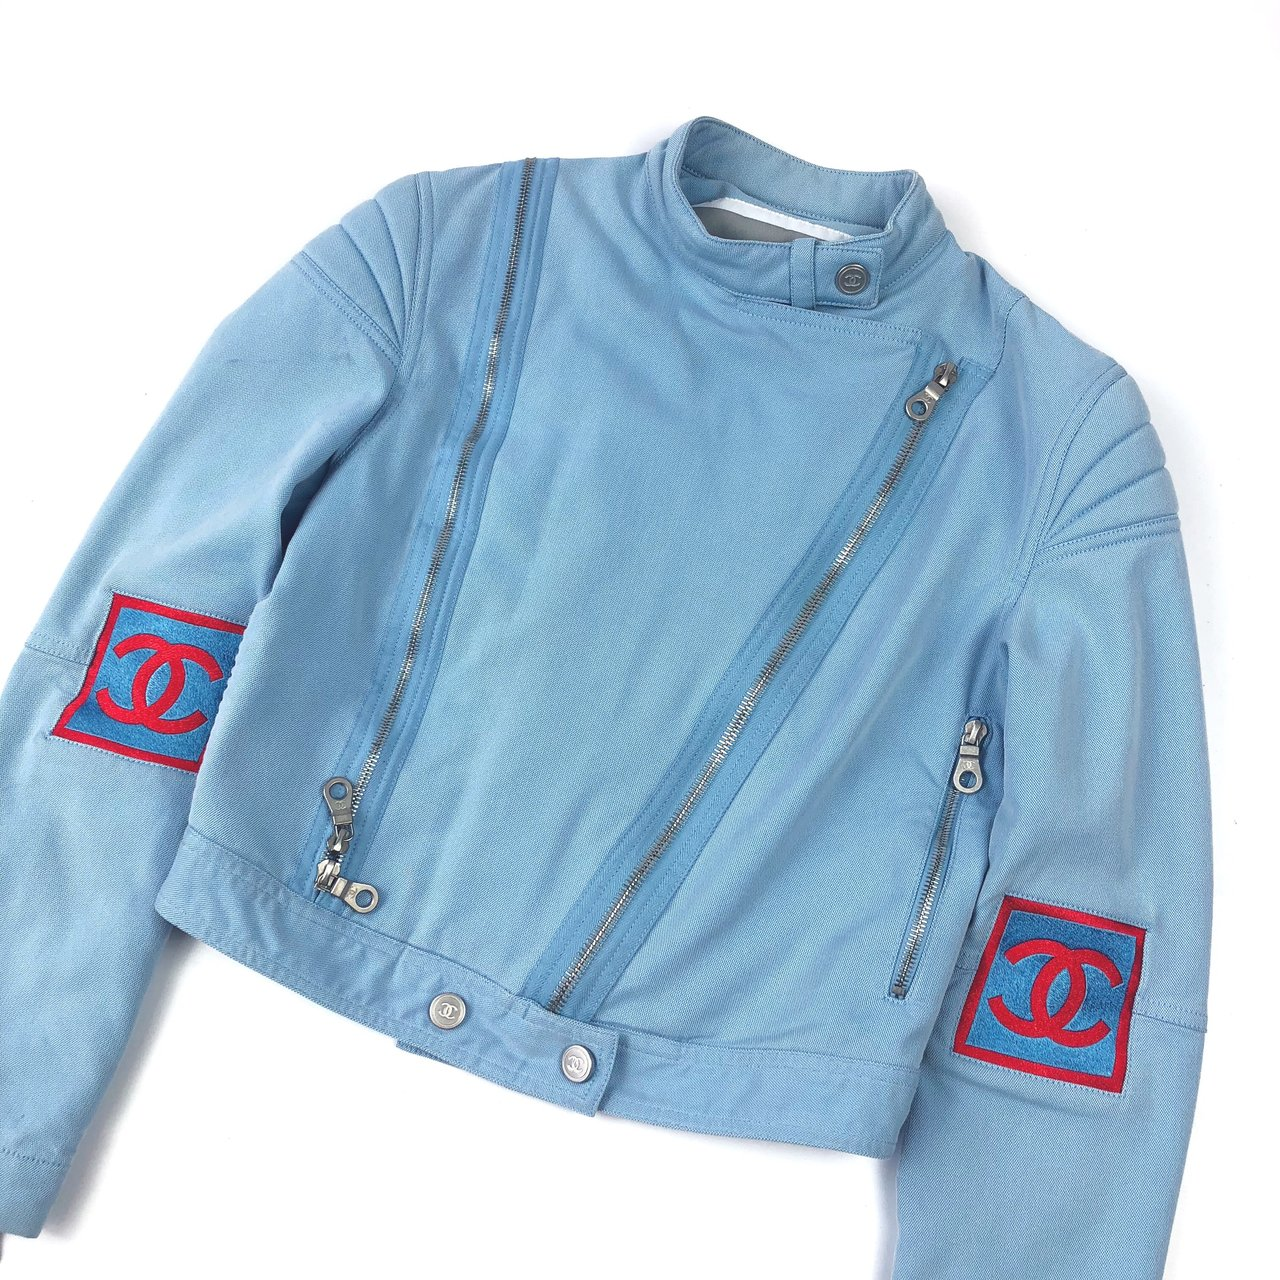 2afc14e3a Authentic Chanel Identification Baby Blue Biker Jacket • IT - Depop